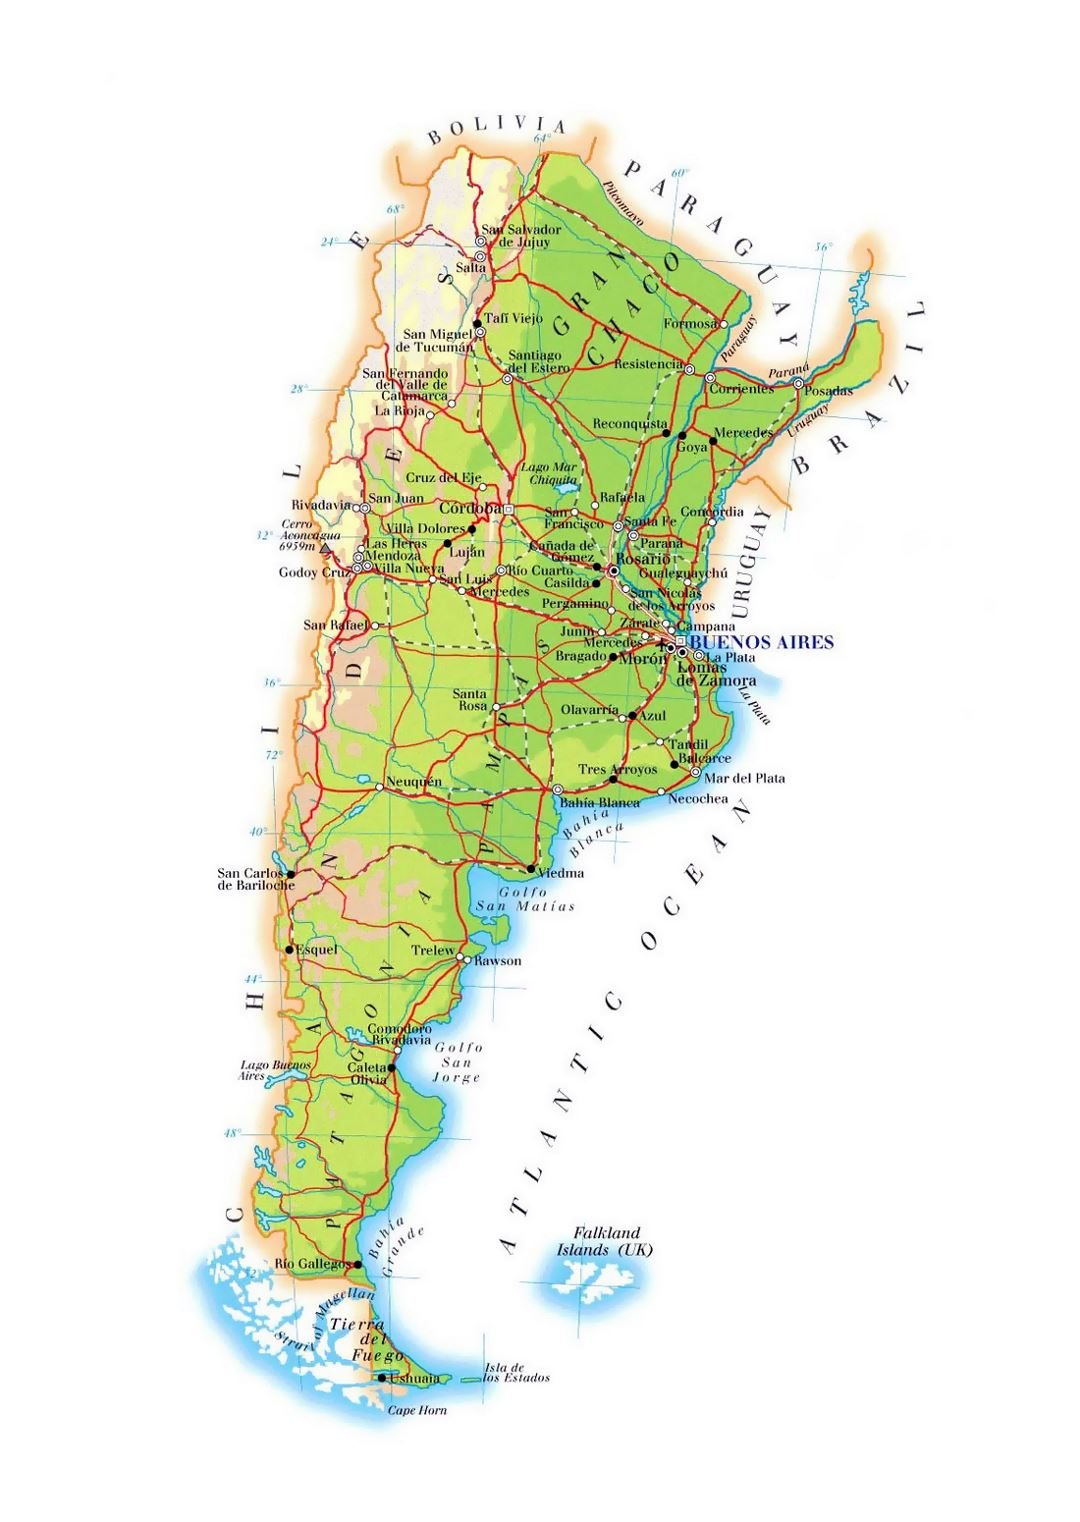 Large elevation map of Argentina with roads, cities and airports